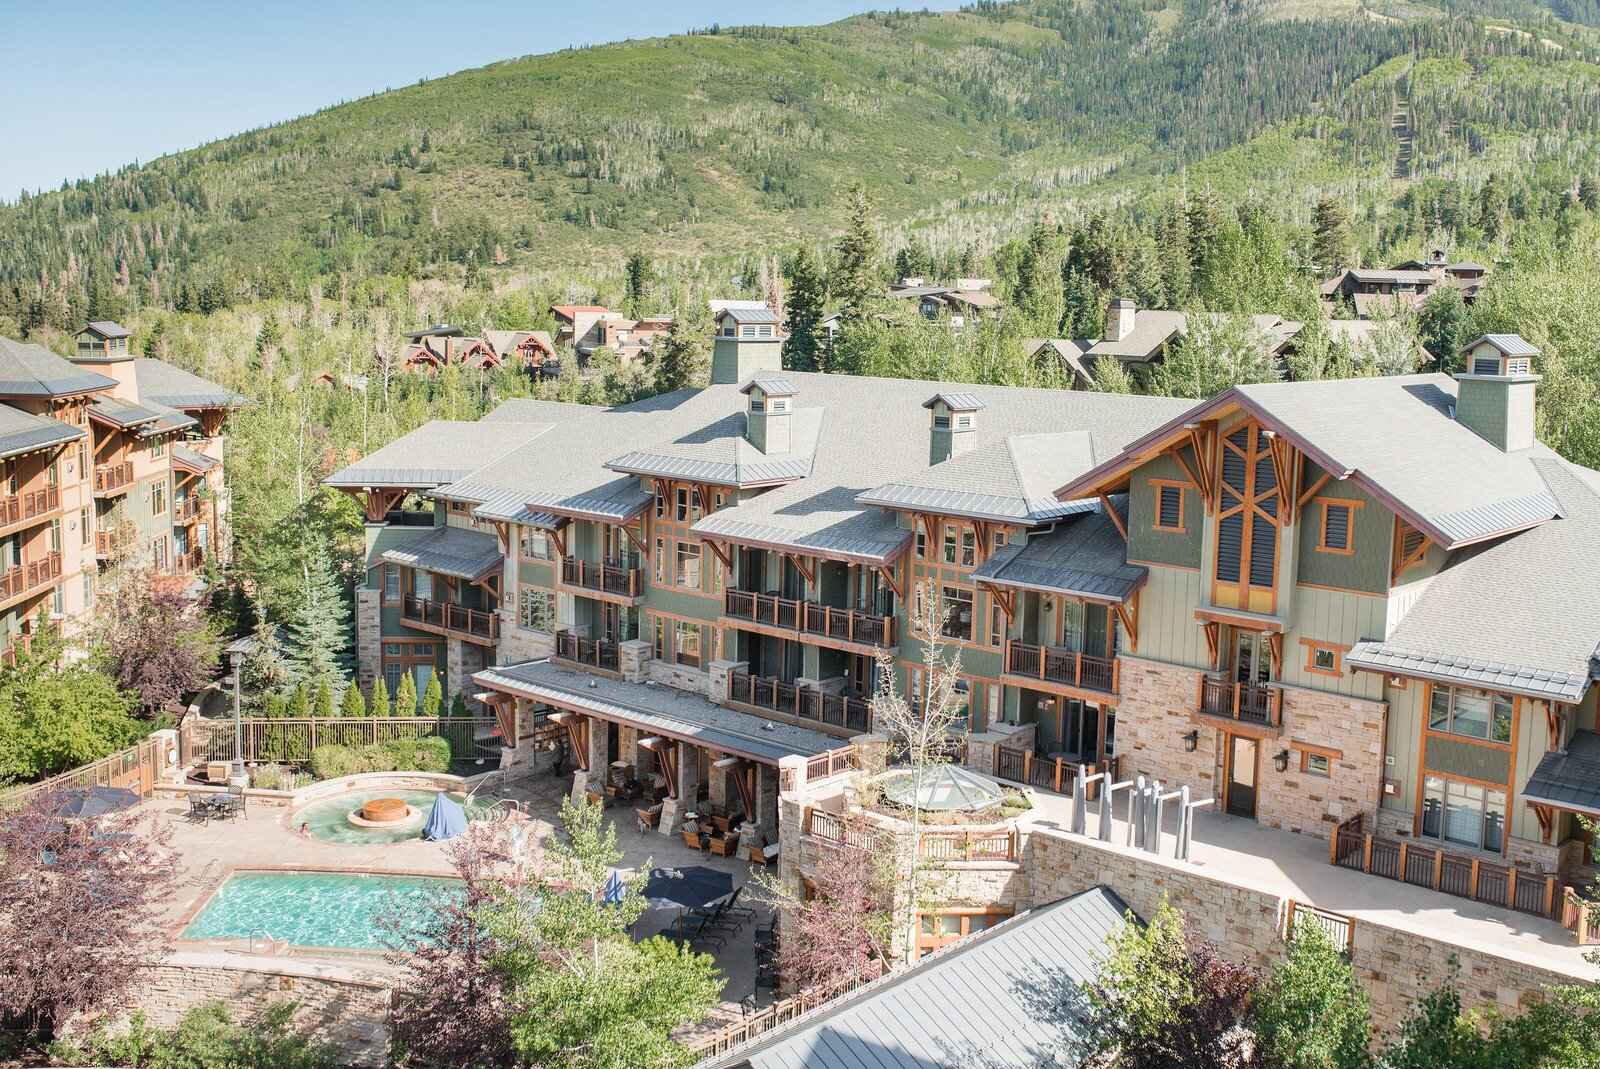 Photo of Hyatt Centric Park City showcasing the mountains, rooms, and pool